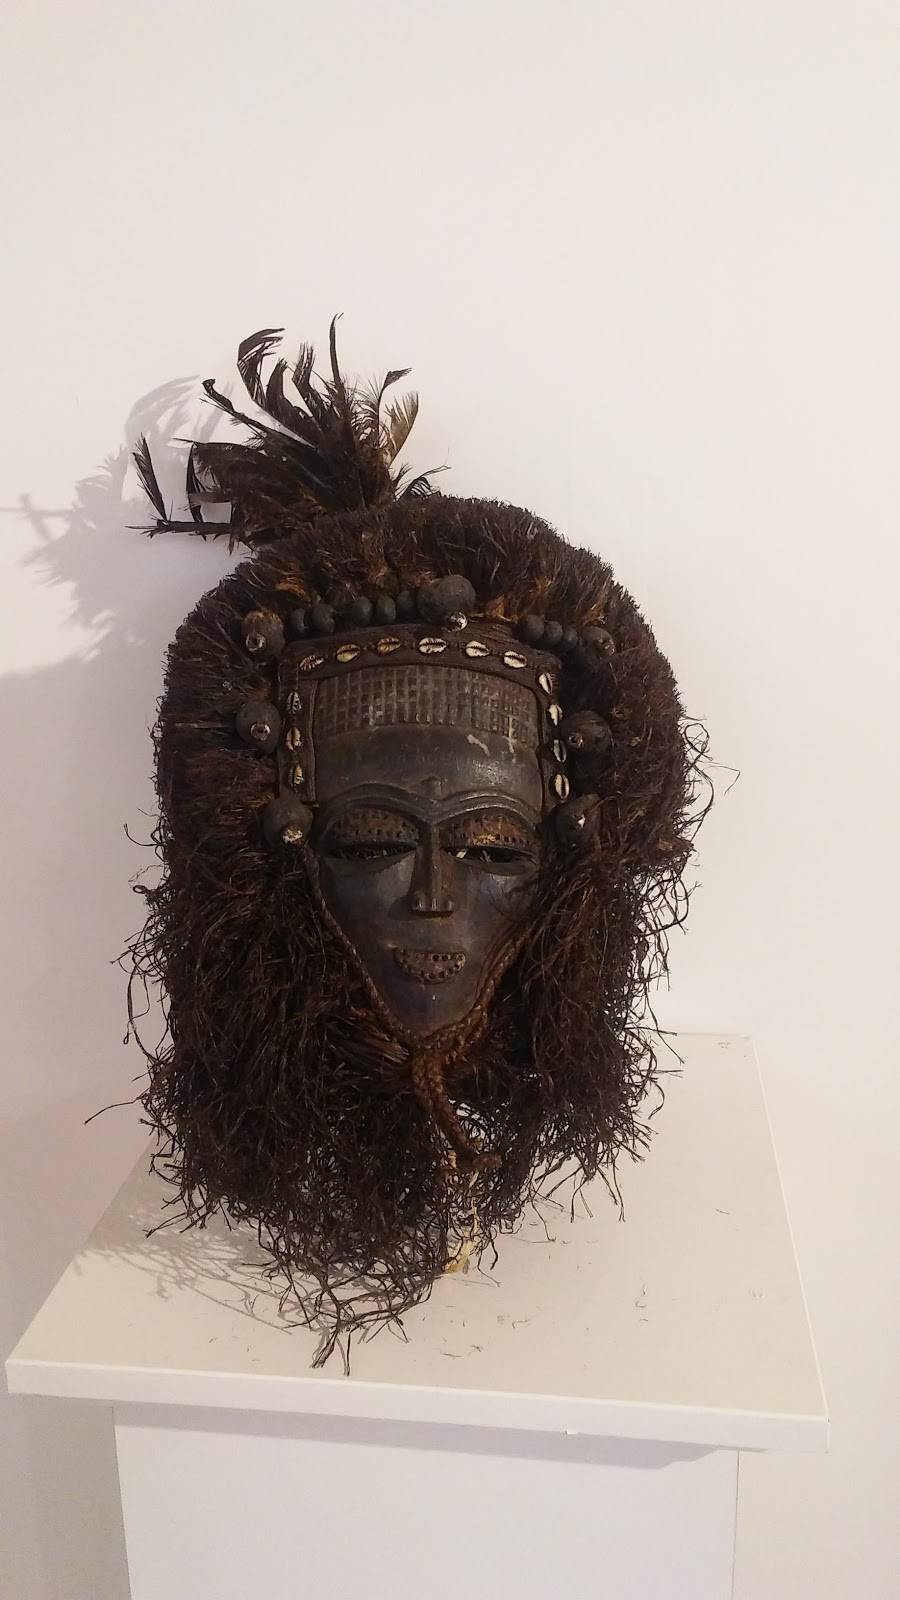 Africa Culture center-Museum - museum  | Photo 9 of 10 | Address: 1935 Q St, Lincoln, NE 68503, USA | Phone: (402) 438-0529